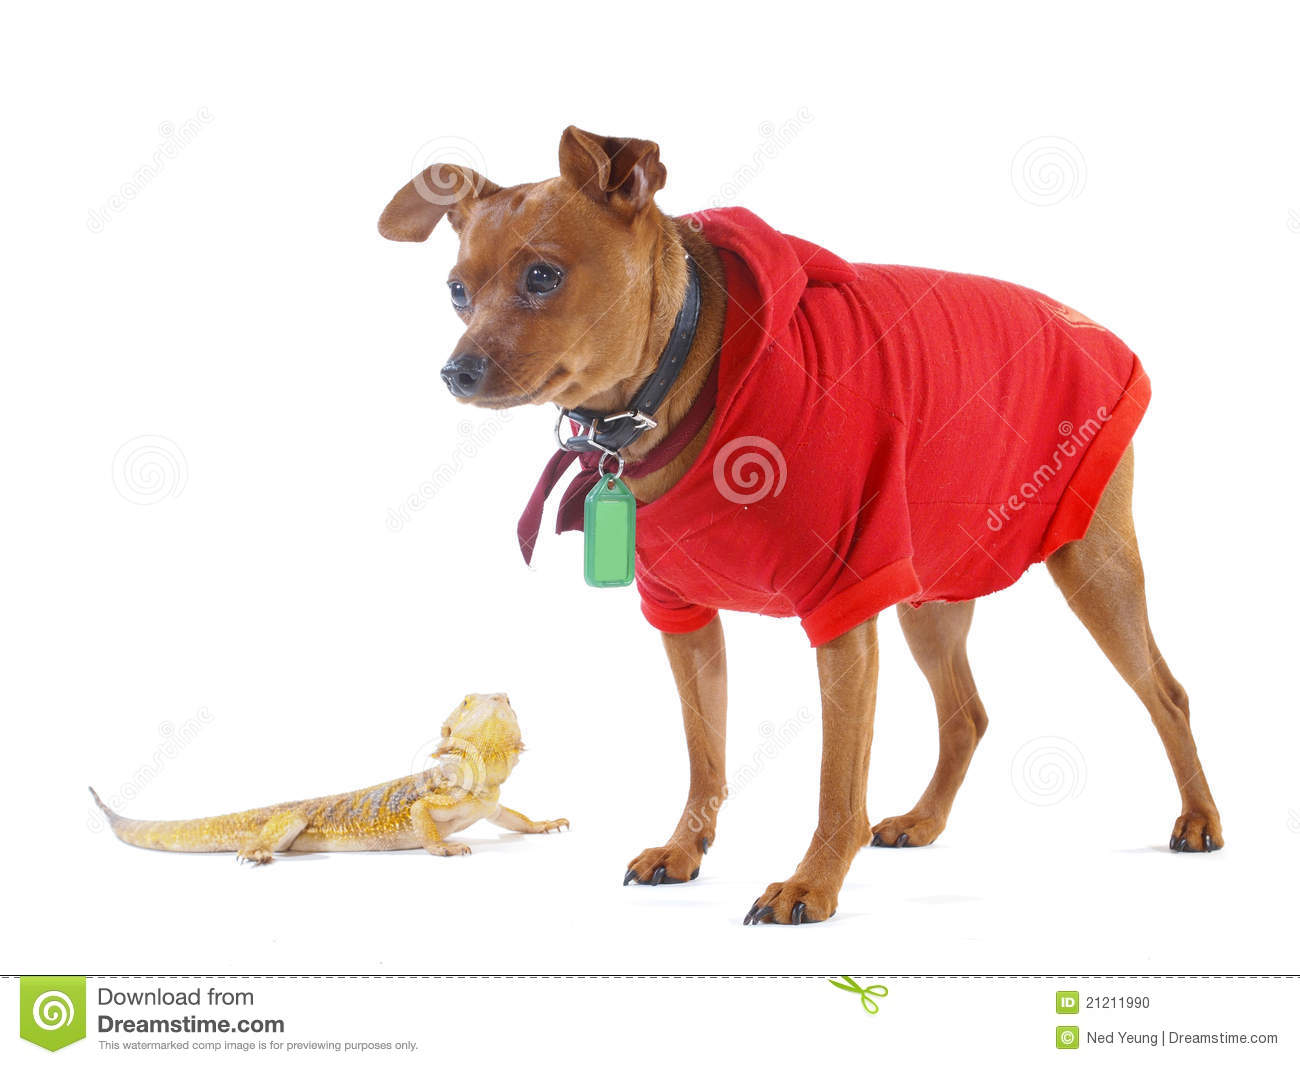 Small Lizard and Smiling Dog